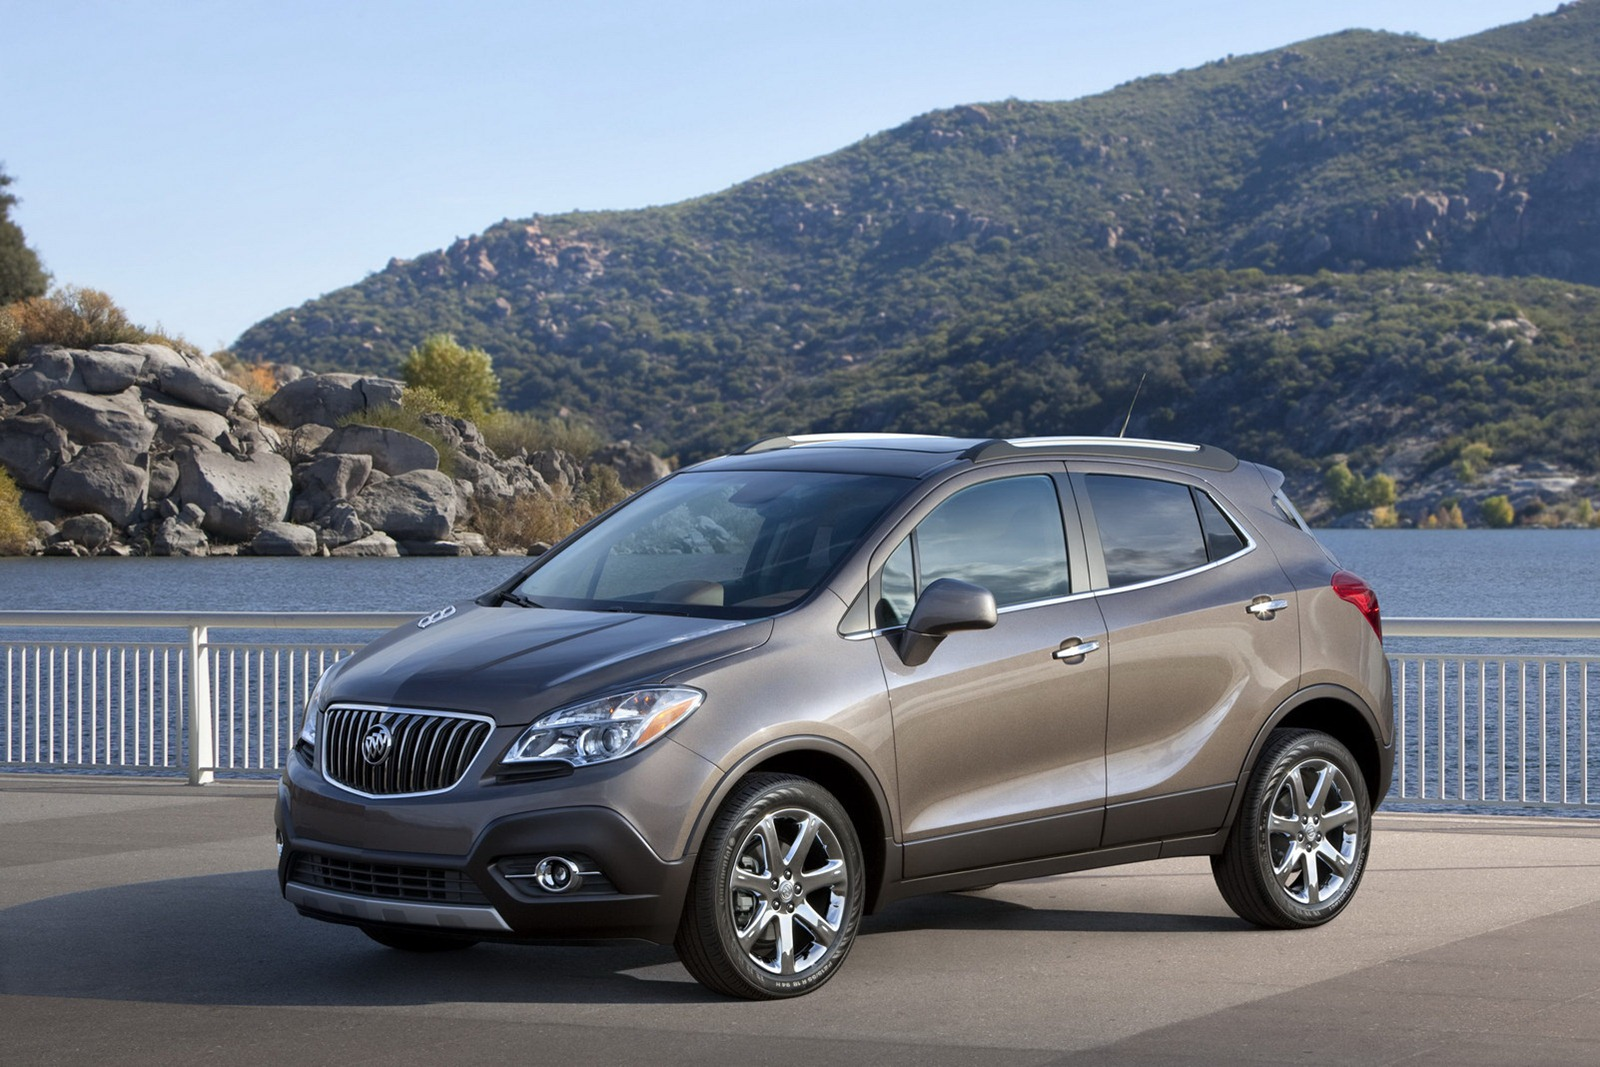 2013 buick encore priced in the us autoevolution. Black Bedroom Furniture Sets. Home Design Ideas